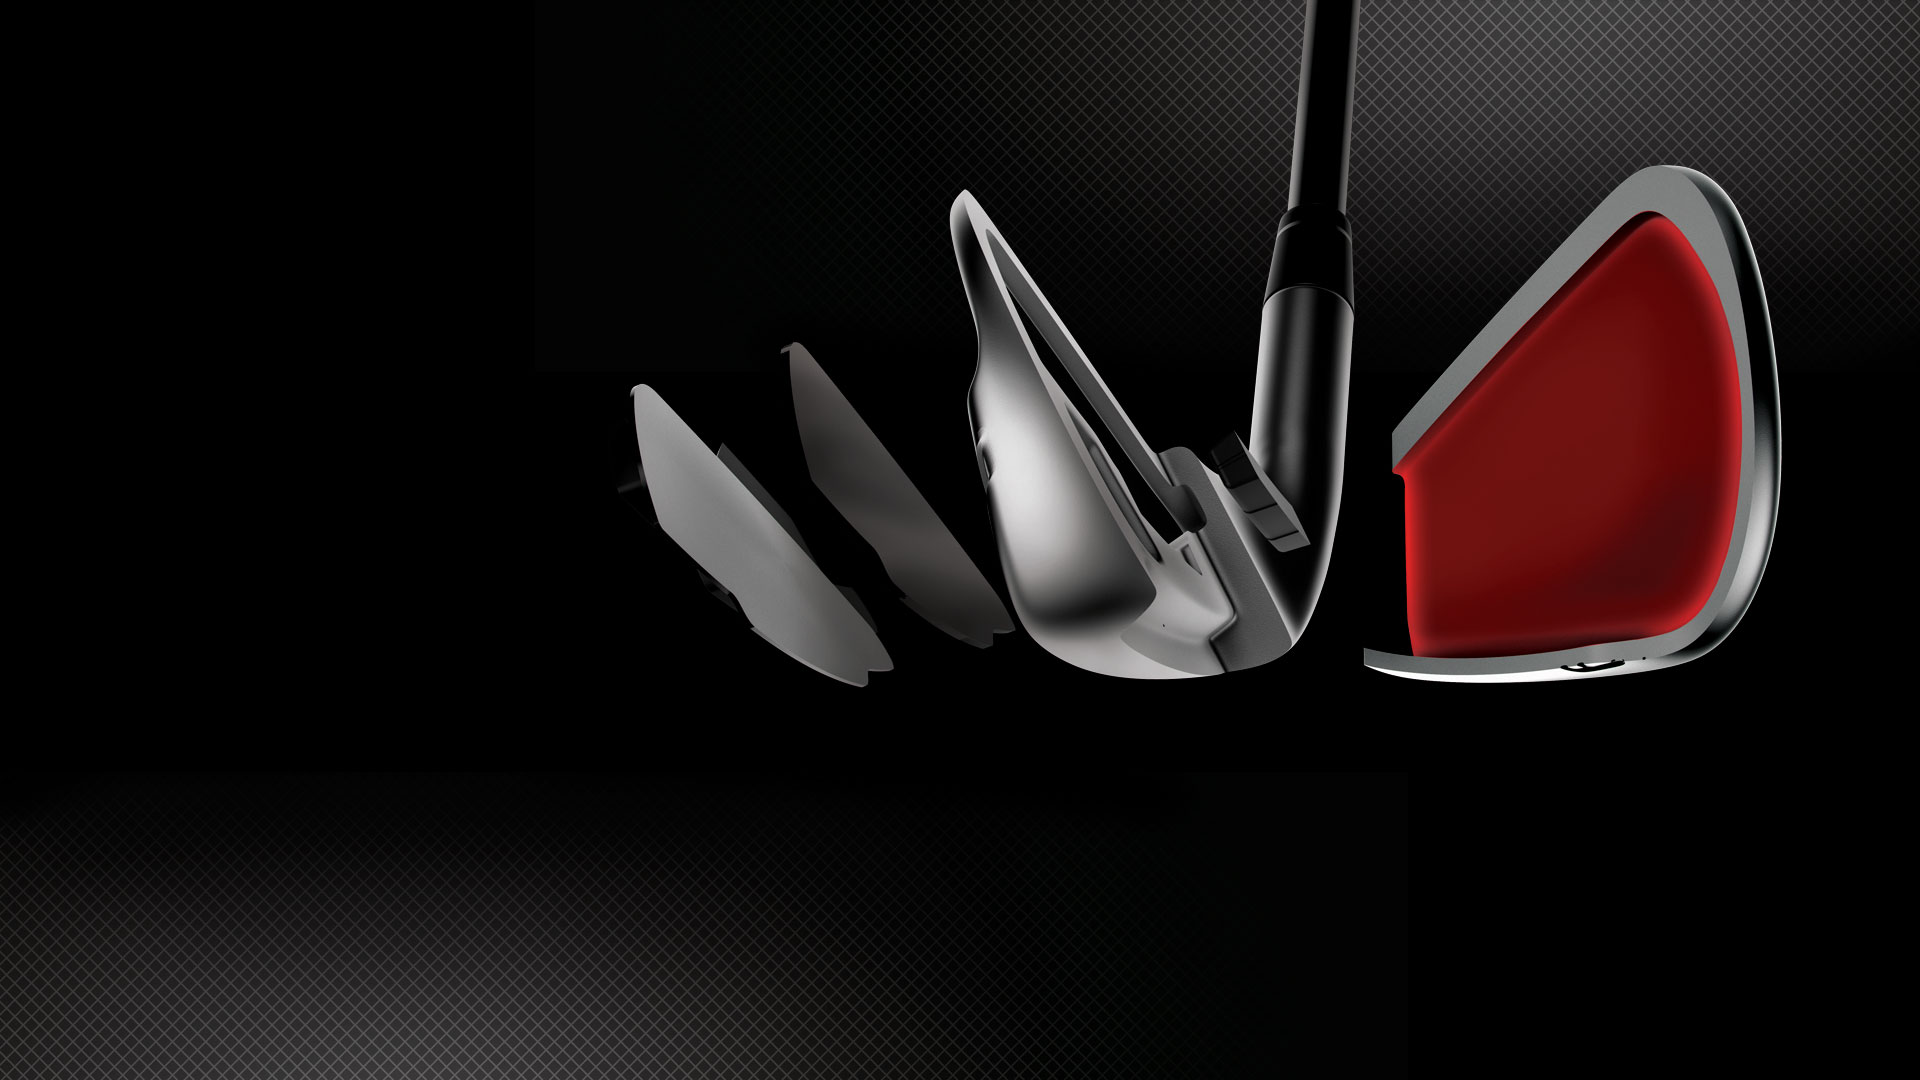 Callaway Apex Forged Iron Face Cup Technology